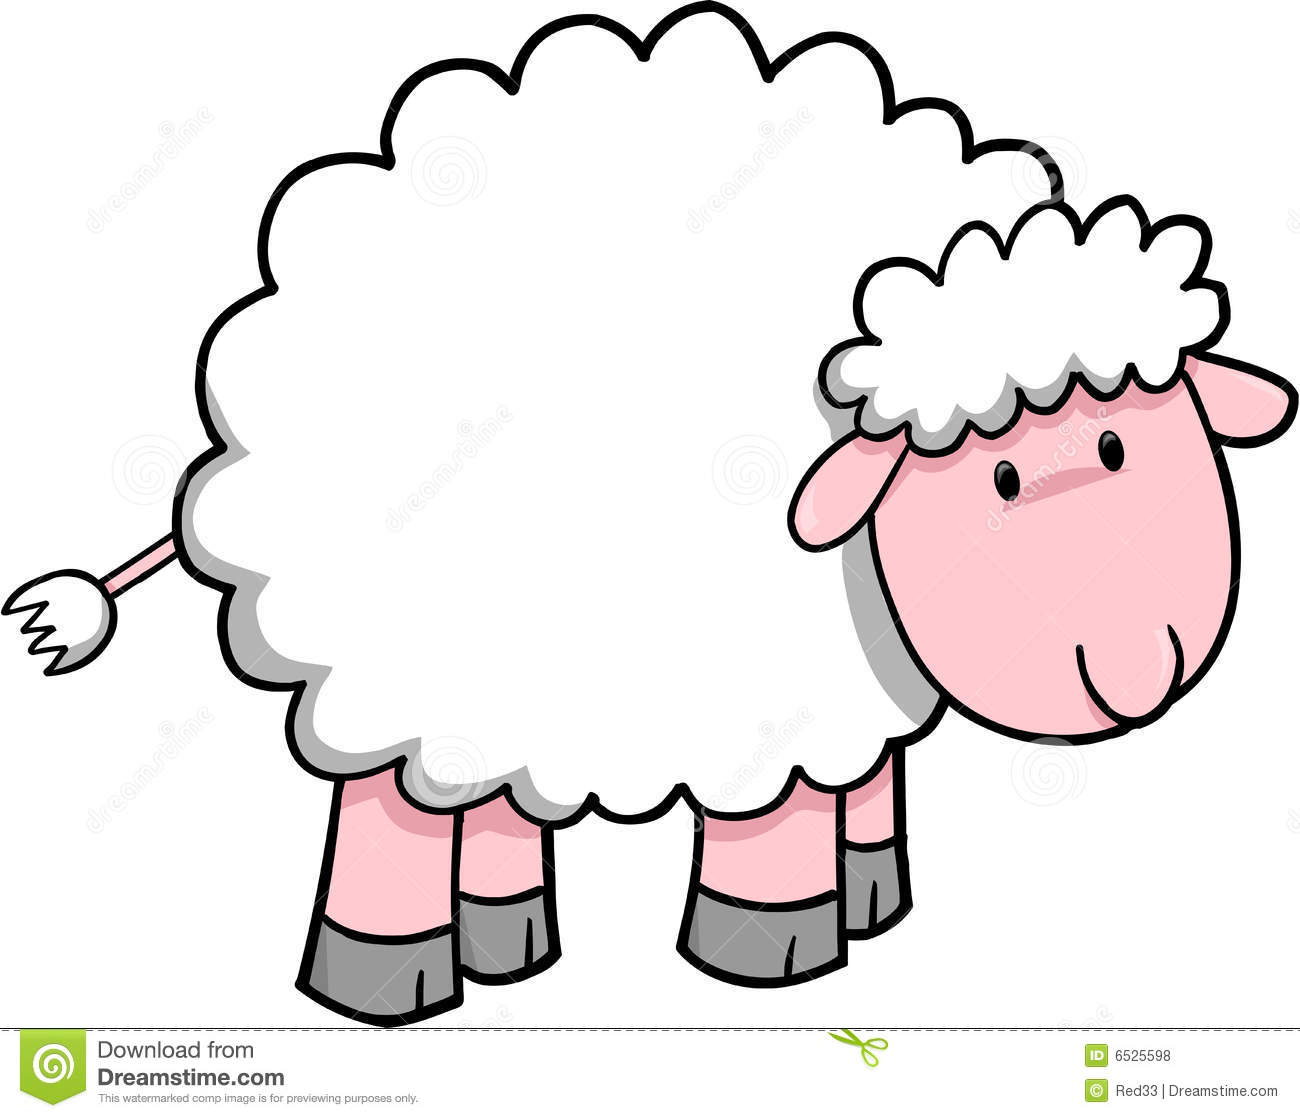 Baby Sheep Clipart Fun Timewebsite Clipa-Baby Sheep Clipart Fun Timewebsite Clipart-3